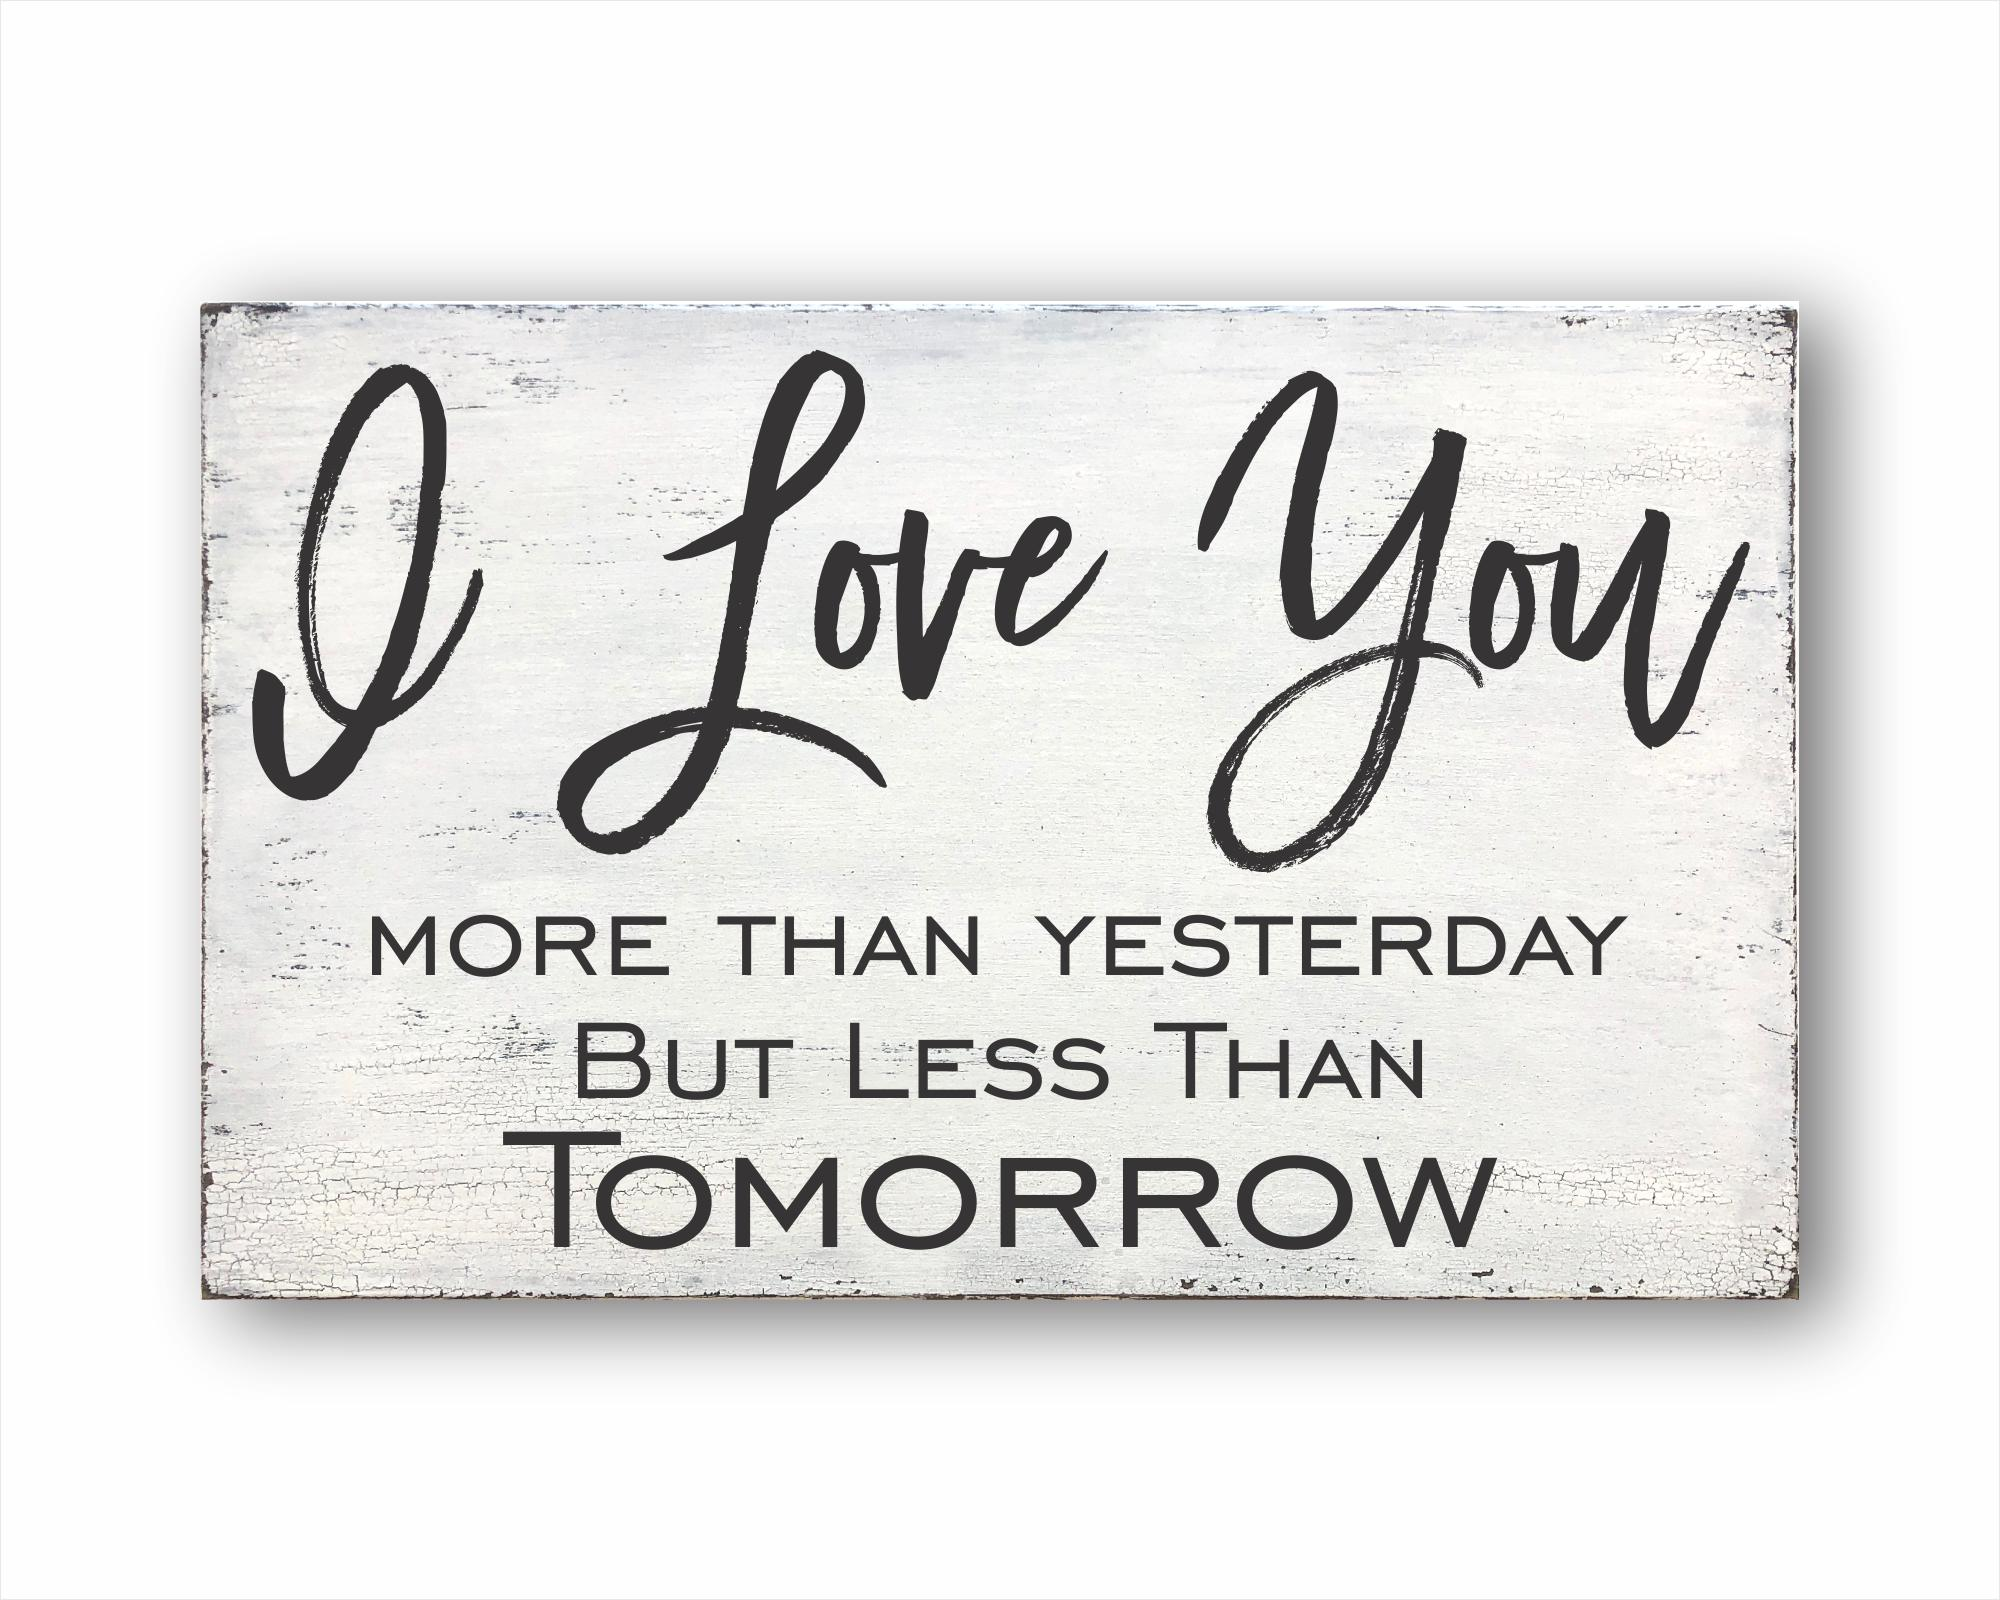 I Love You More Than Yesterday But Less Than Tomorrow: Rustic Rectangular Wood Sign